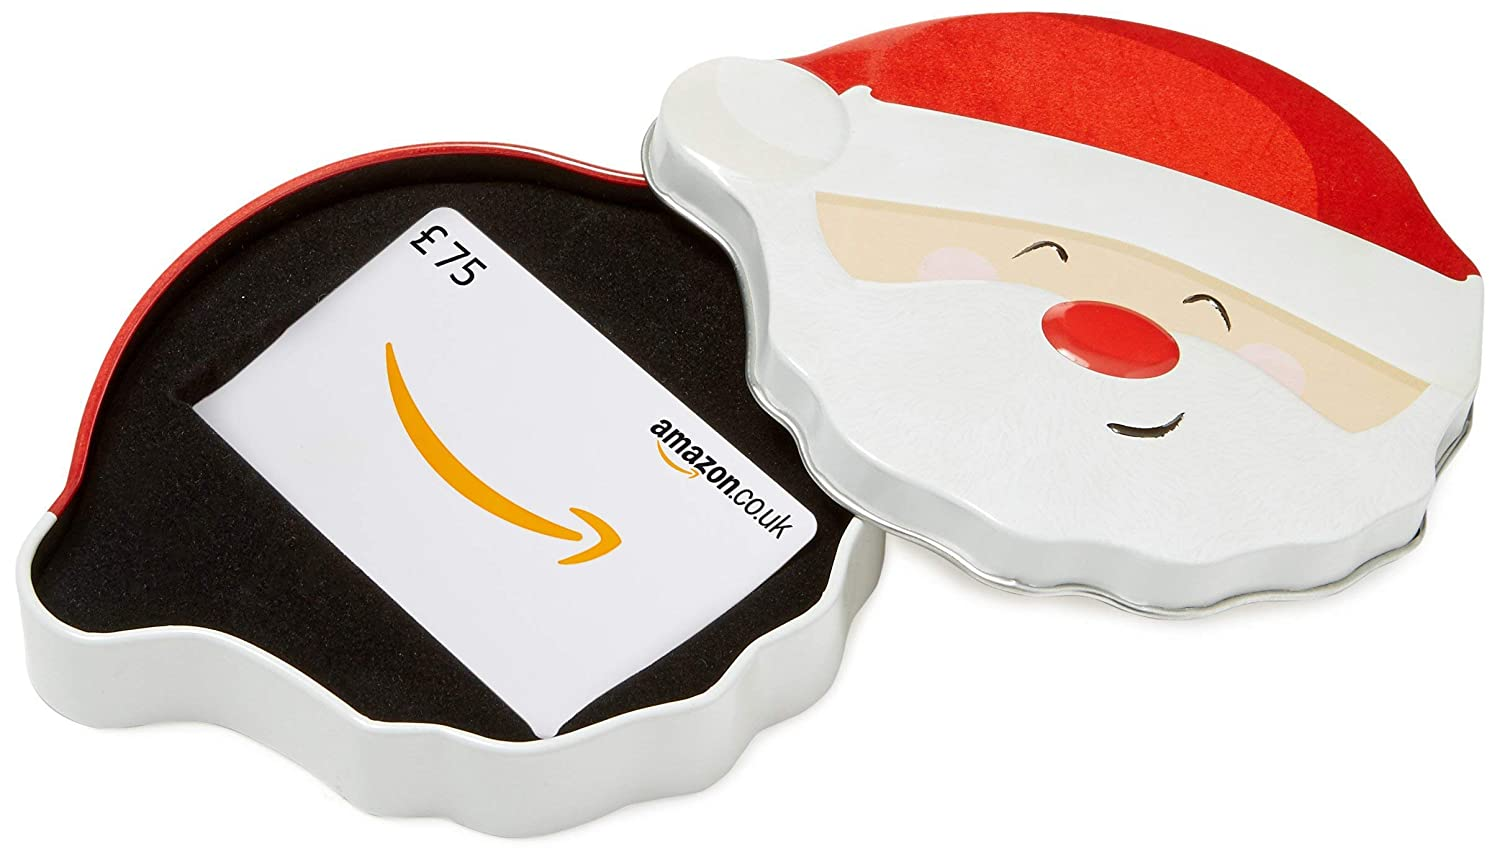 Amazon.co.uk Gift Card for Custom Amount in a Santa Smile Tin - FREE One-Day Delivery Amazon EU S.à.r.l. VariableDenomination